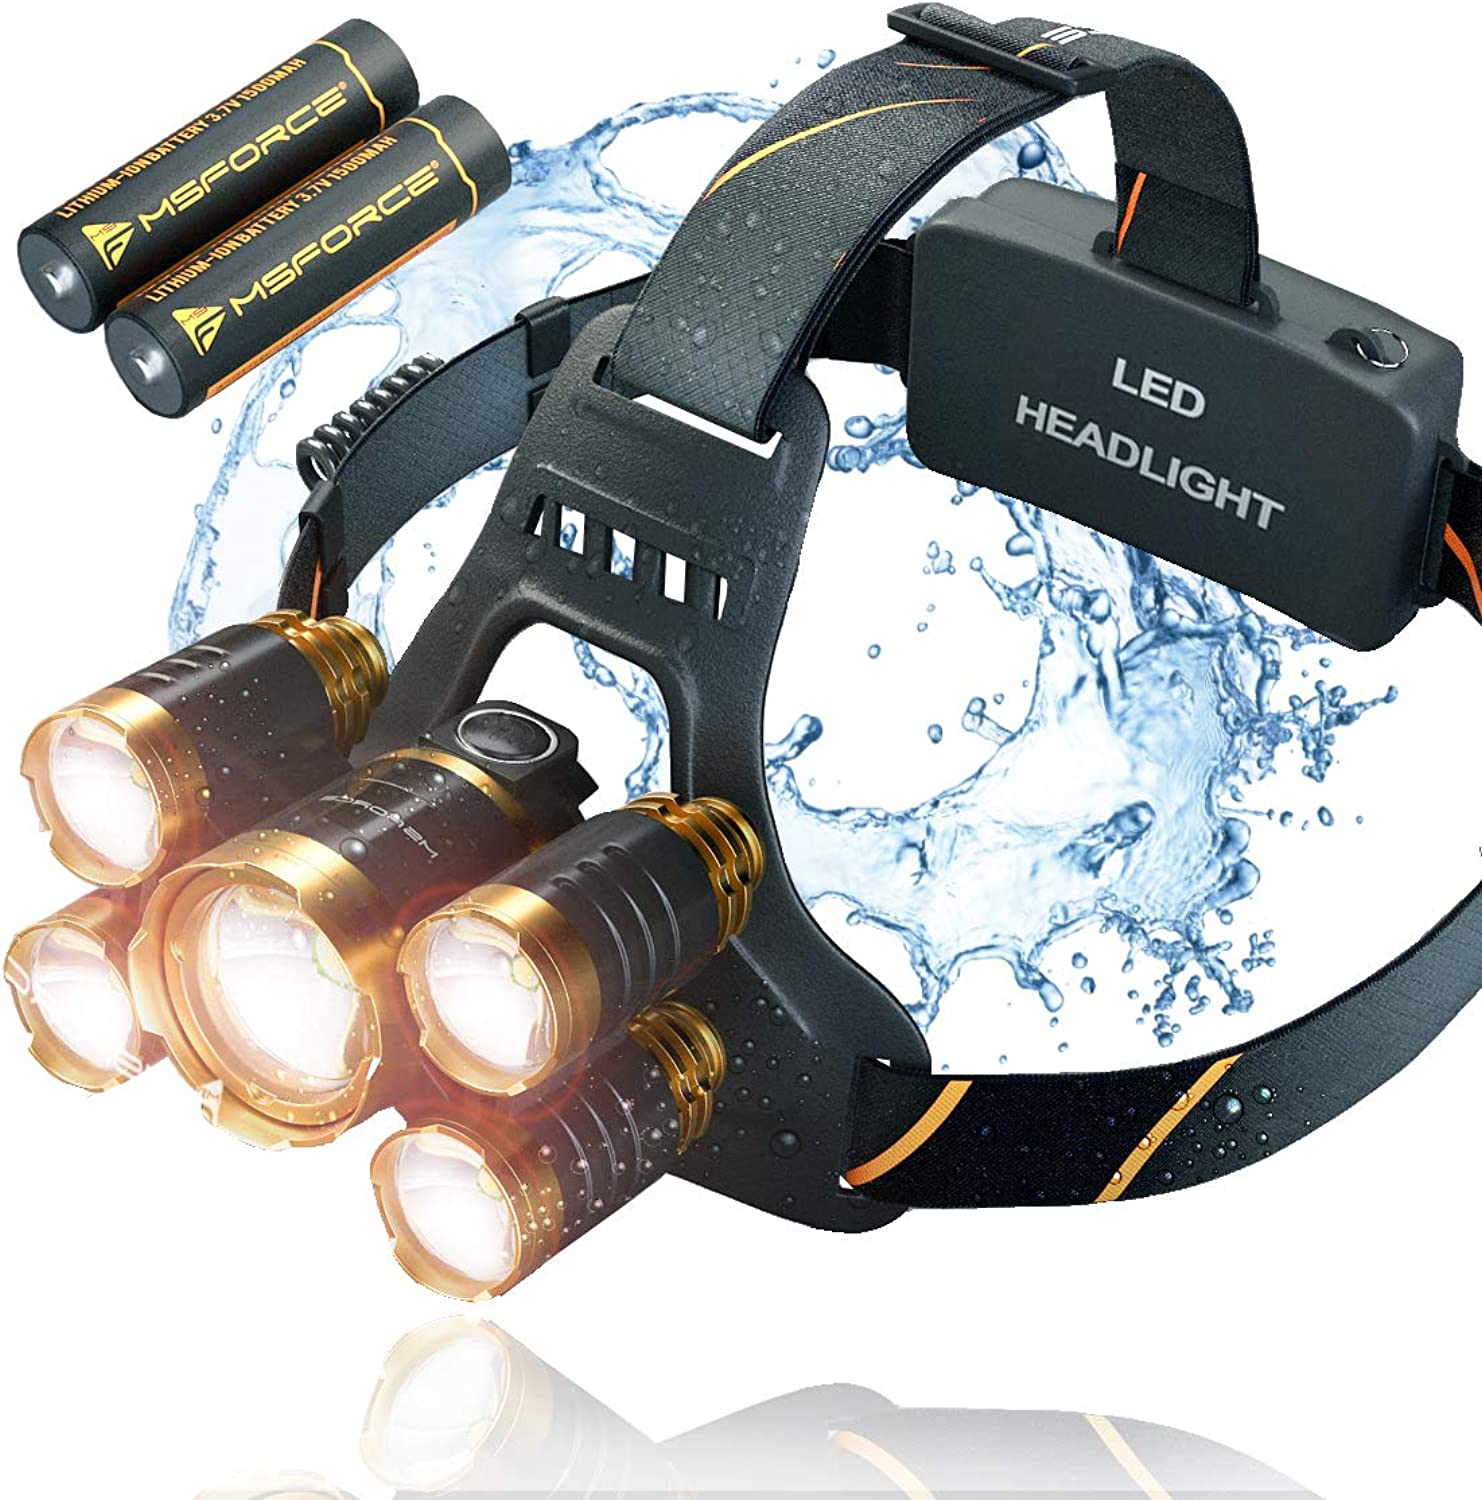 Headlamp Flashlight - 5 Original Head LED Providing 1080 Lumens, 2 Powerful Rechargeable Batteries 18650, Comfort For Indoor & Outdoor, Walking with Your Dog